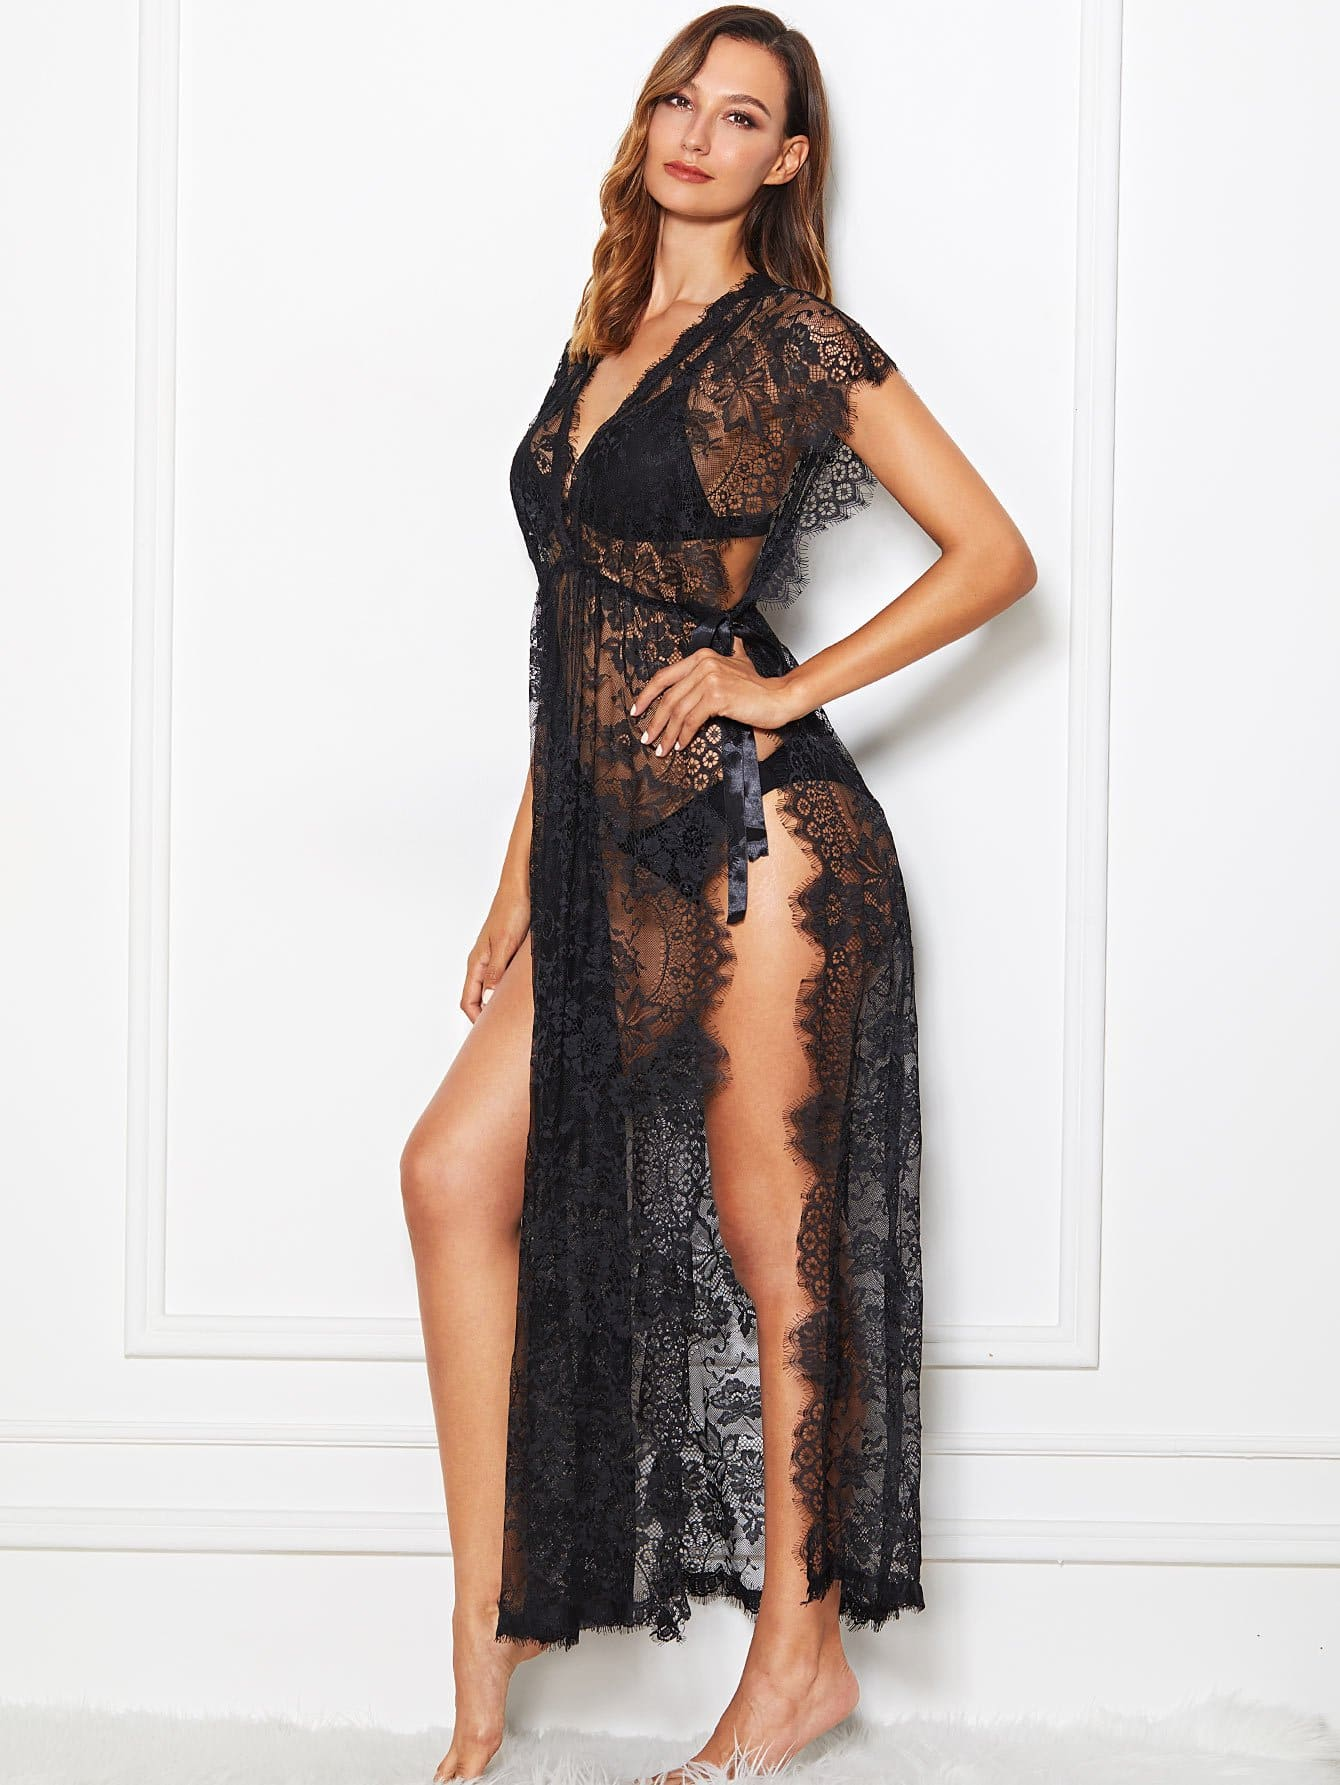 High Split Lace Dress With Thong high split lace dress with thong